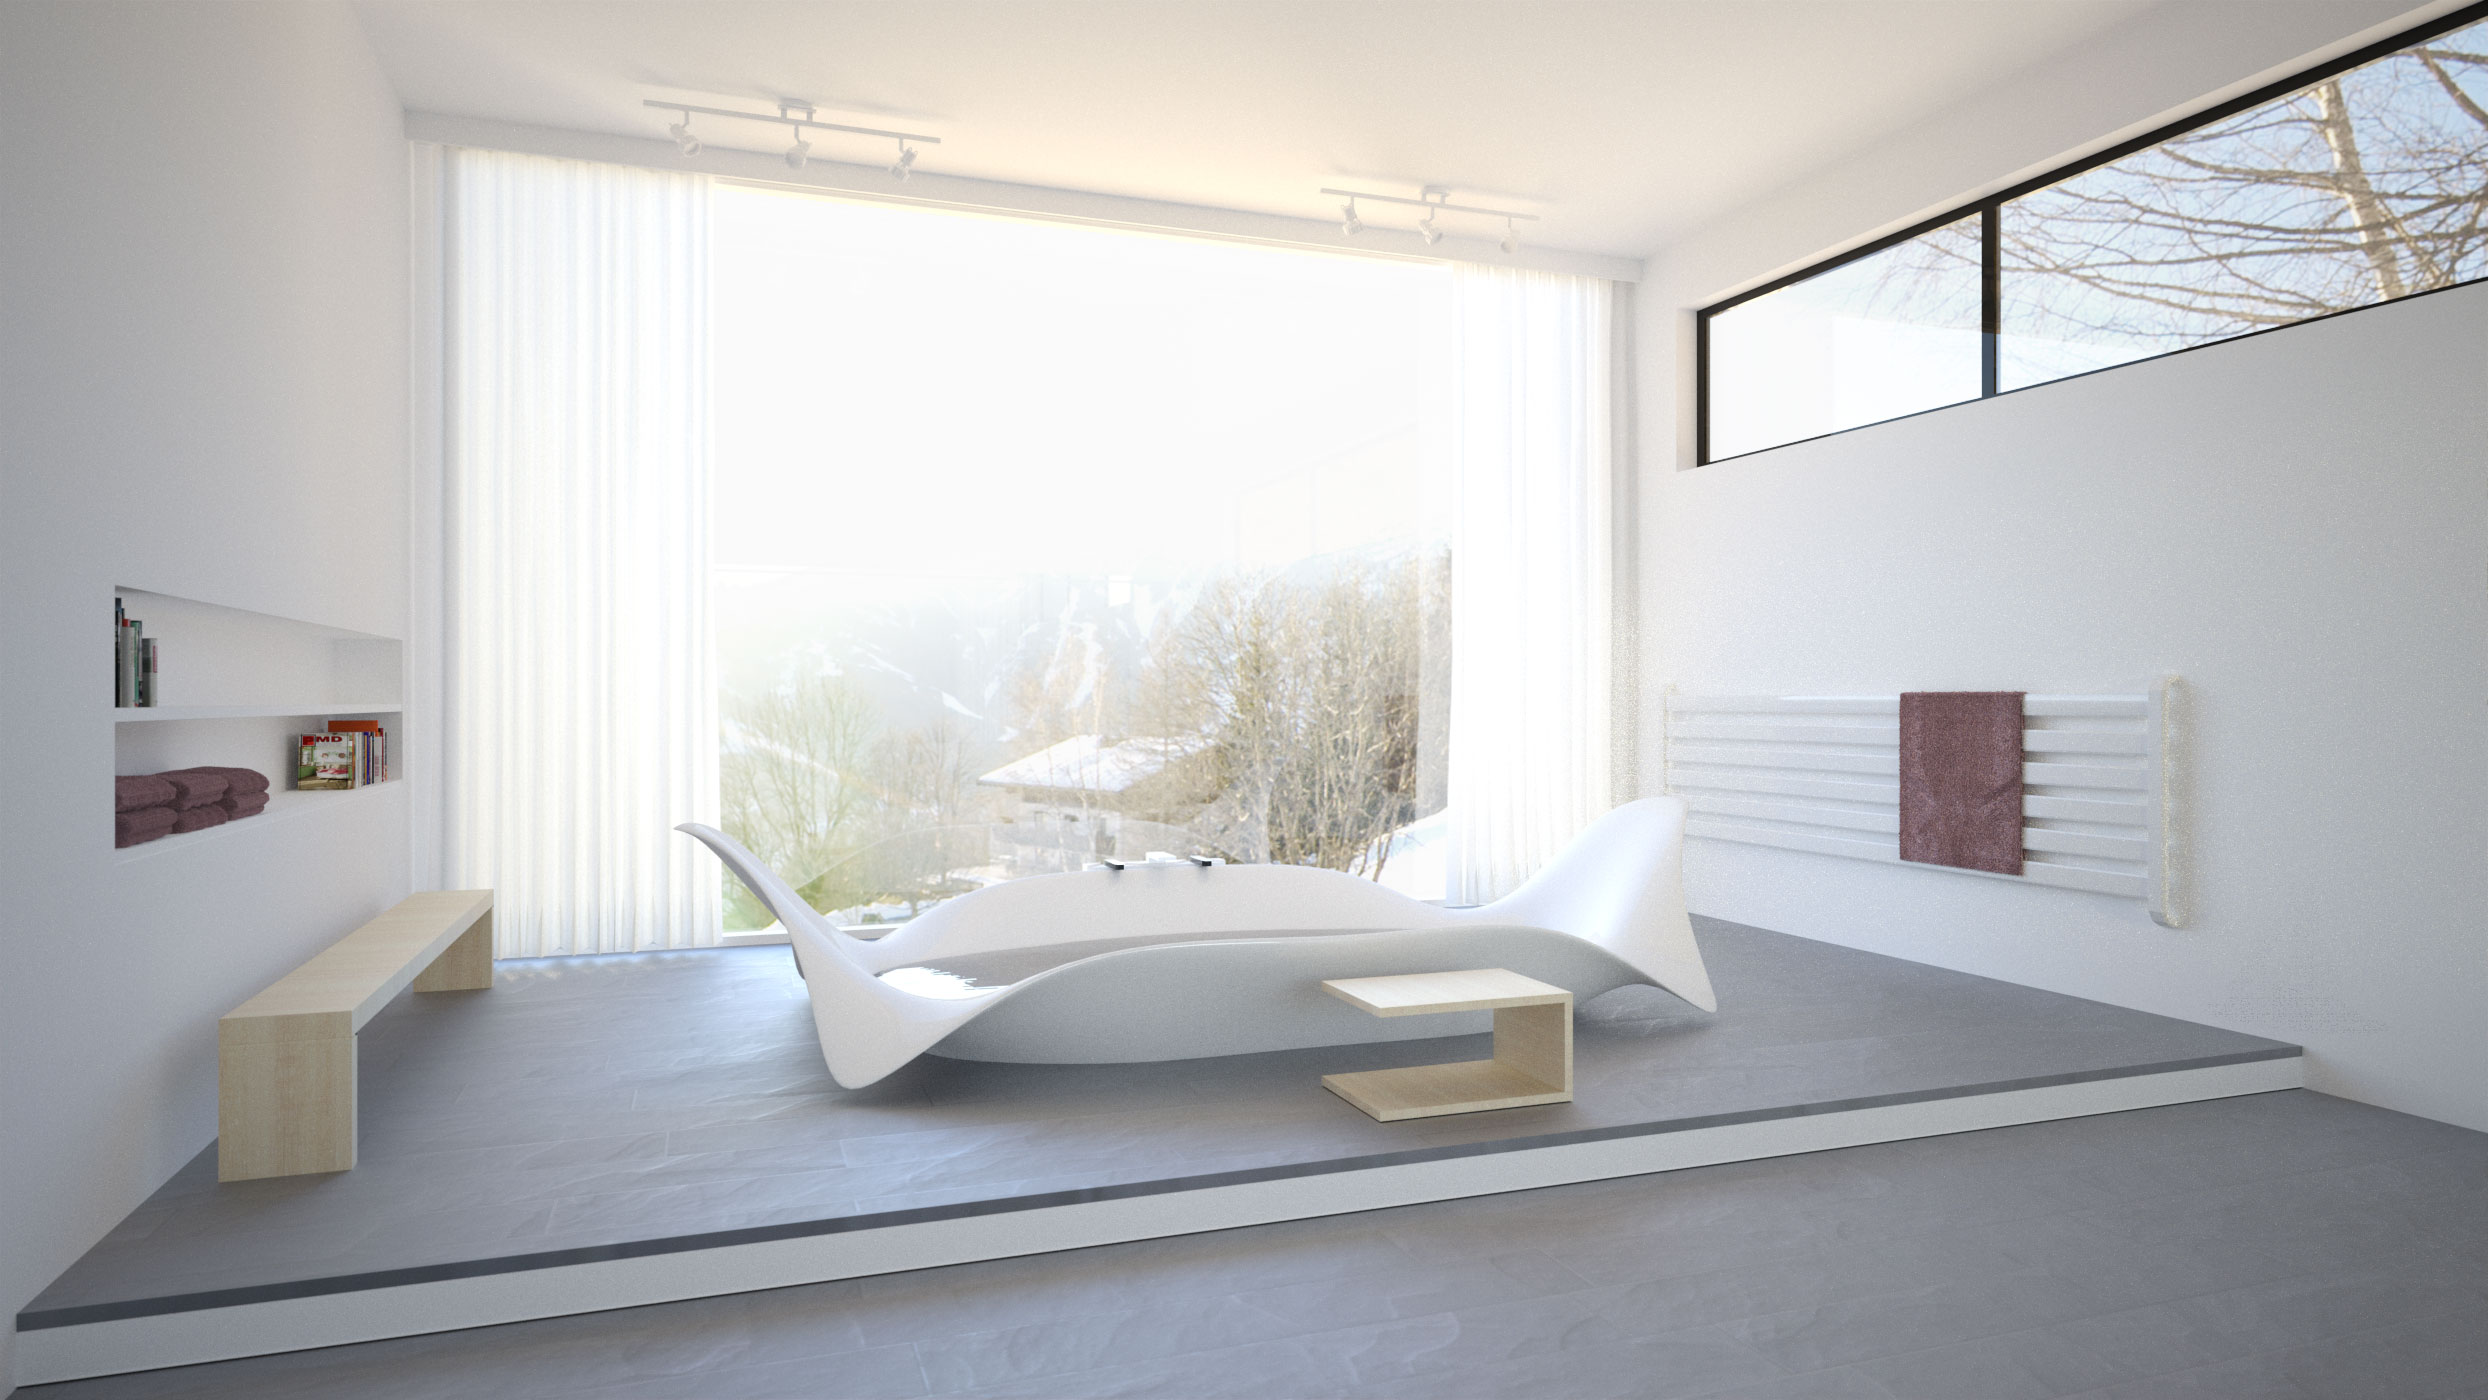 unique bathtubs. . image size. view in gallery bachelor pad